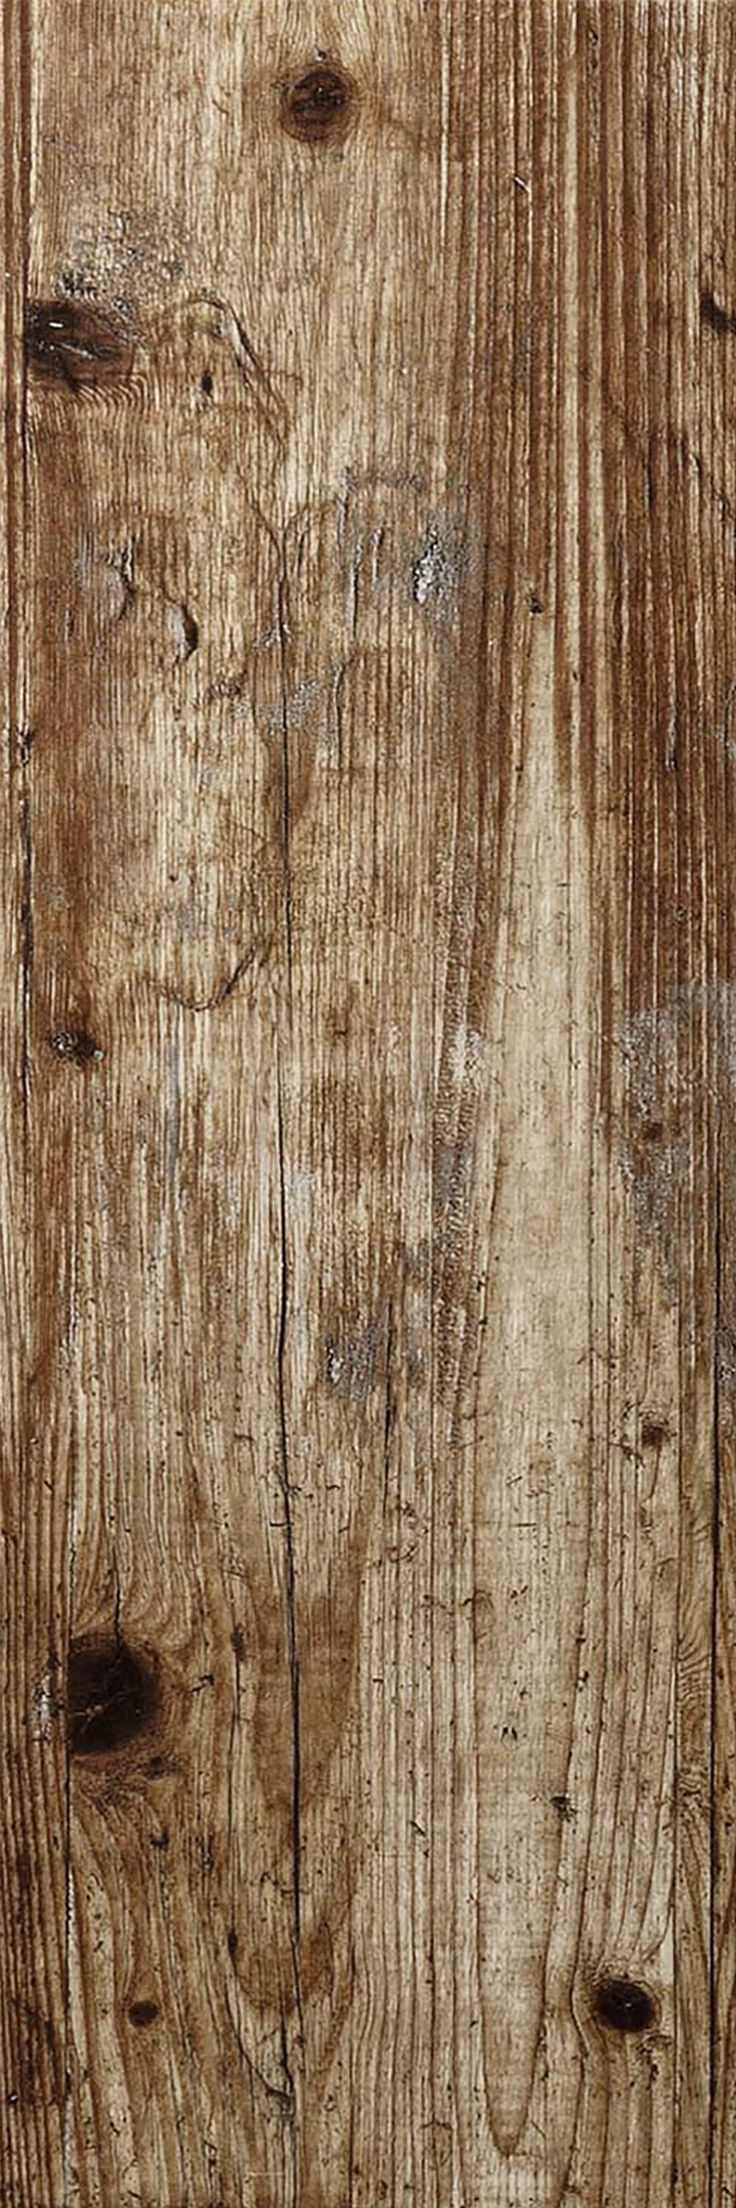 Rustic Barn Tiles look completely realistic and only £19.95 / Sqm! www.wallsandfloors.co.uk/range/designer-tiles/rustic-wood-tiles/